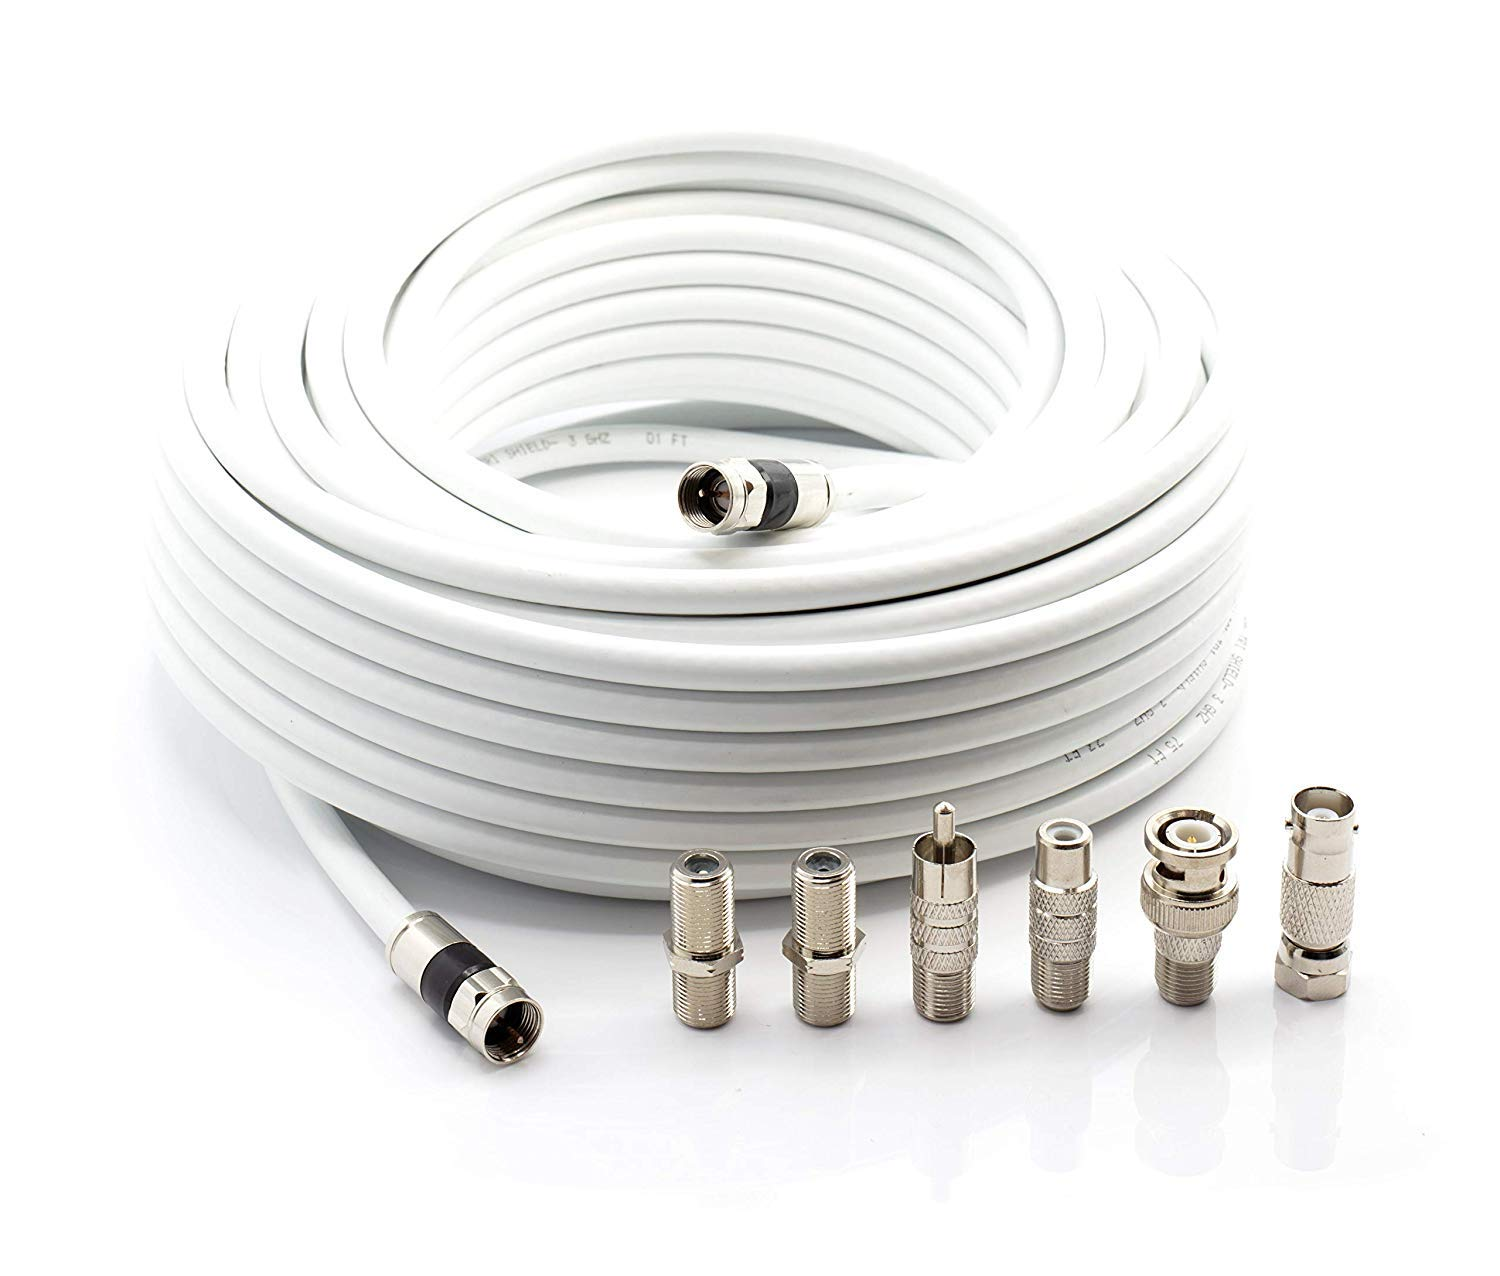 THE CIMPLE CO - Digital Coaxial Cable Kit with Universal Ends  RG6 Coax Cable and six (6) Piece Adapter Kit Includes Male Female RCA BNC F81, ...